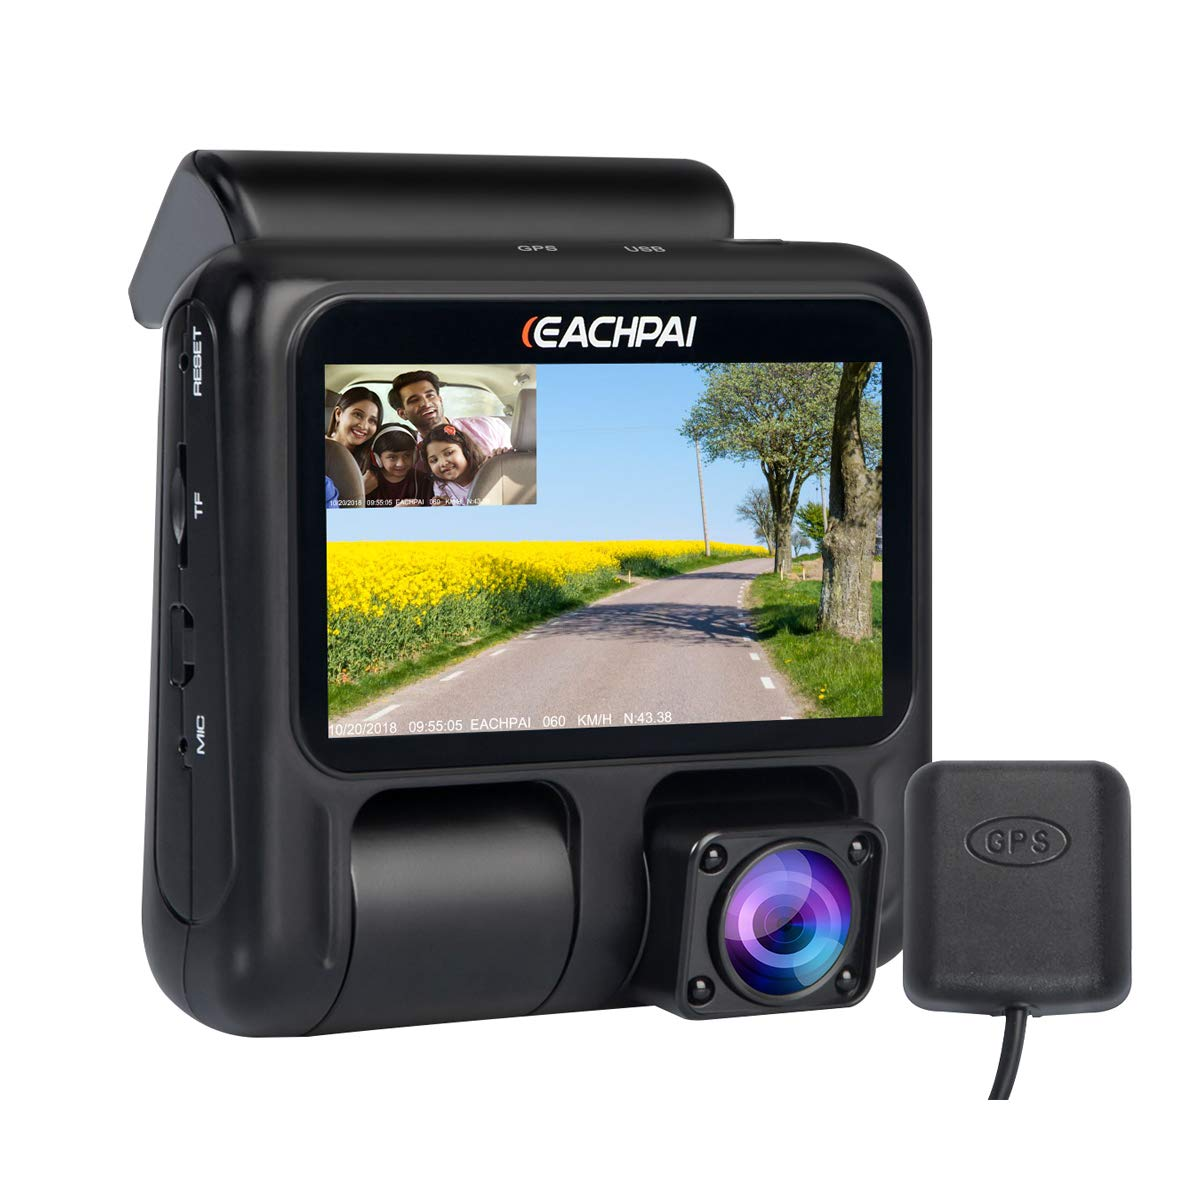 Dual Dash Cam,EACHPAI X100 Pro Dash Camera Inside and Front for Cars//Truck//Taxi 1920X1080P Dashboard Camera,IR Night Vision,Super Capacitor,Wide Angle,Loop Record,WDR,GPS,32G Kingston Card